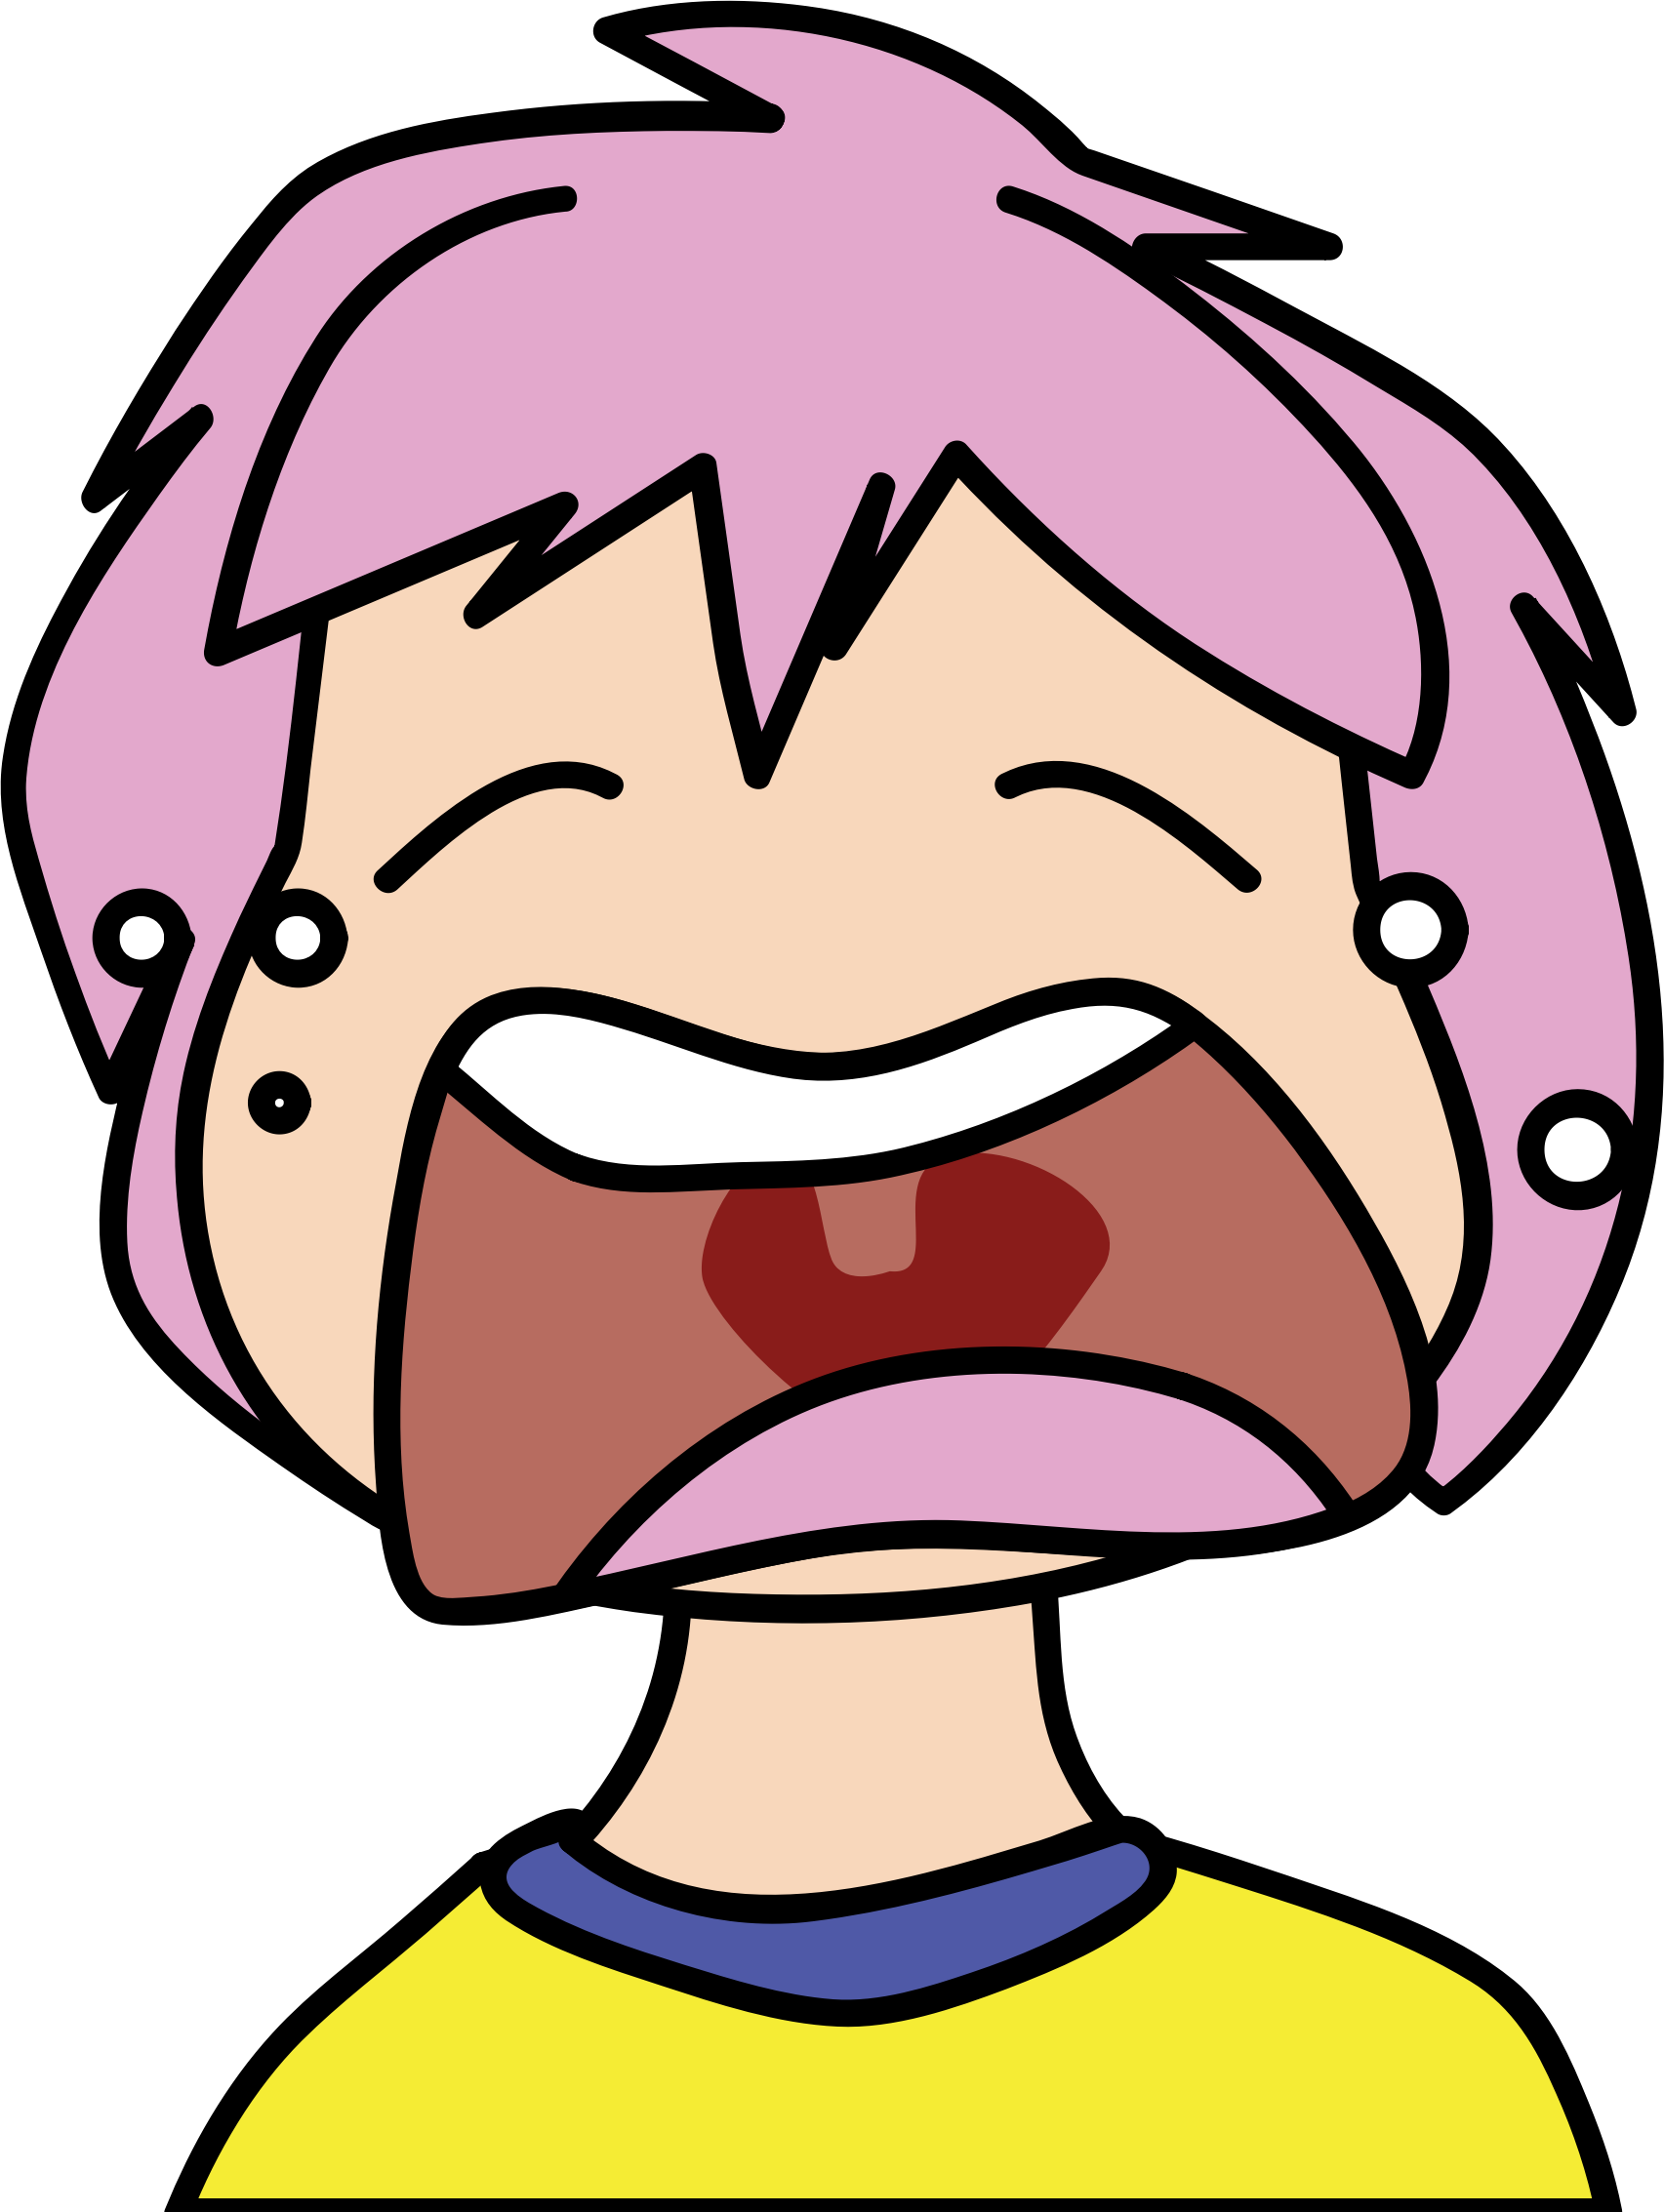 Cry clipart cry kid. Crying child big image